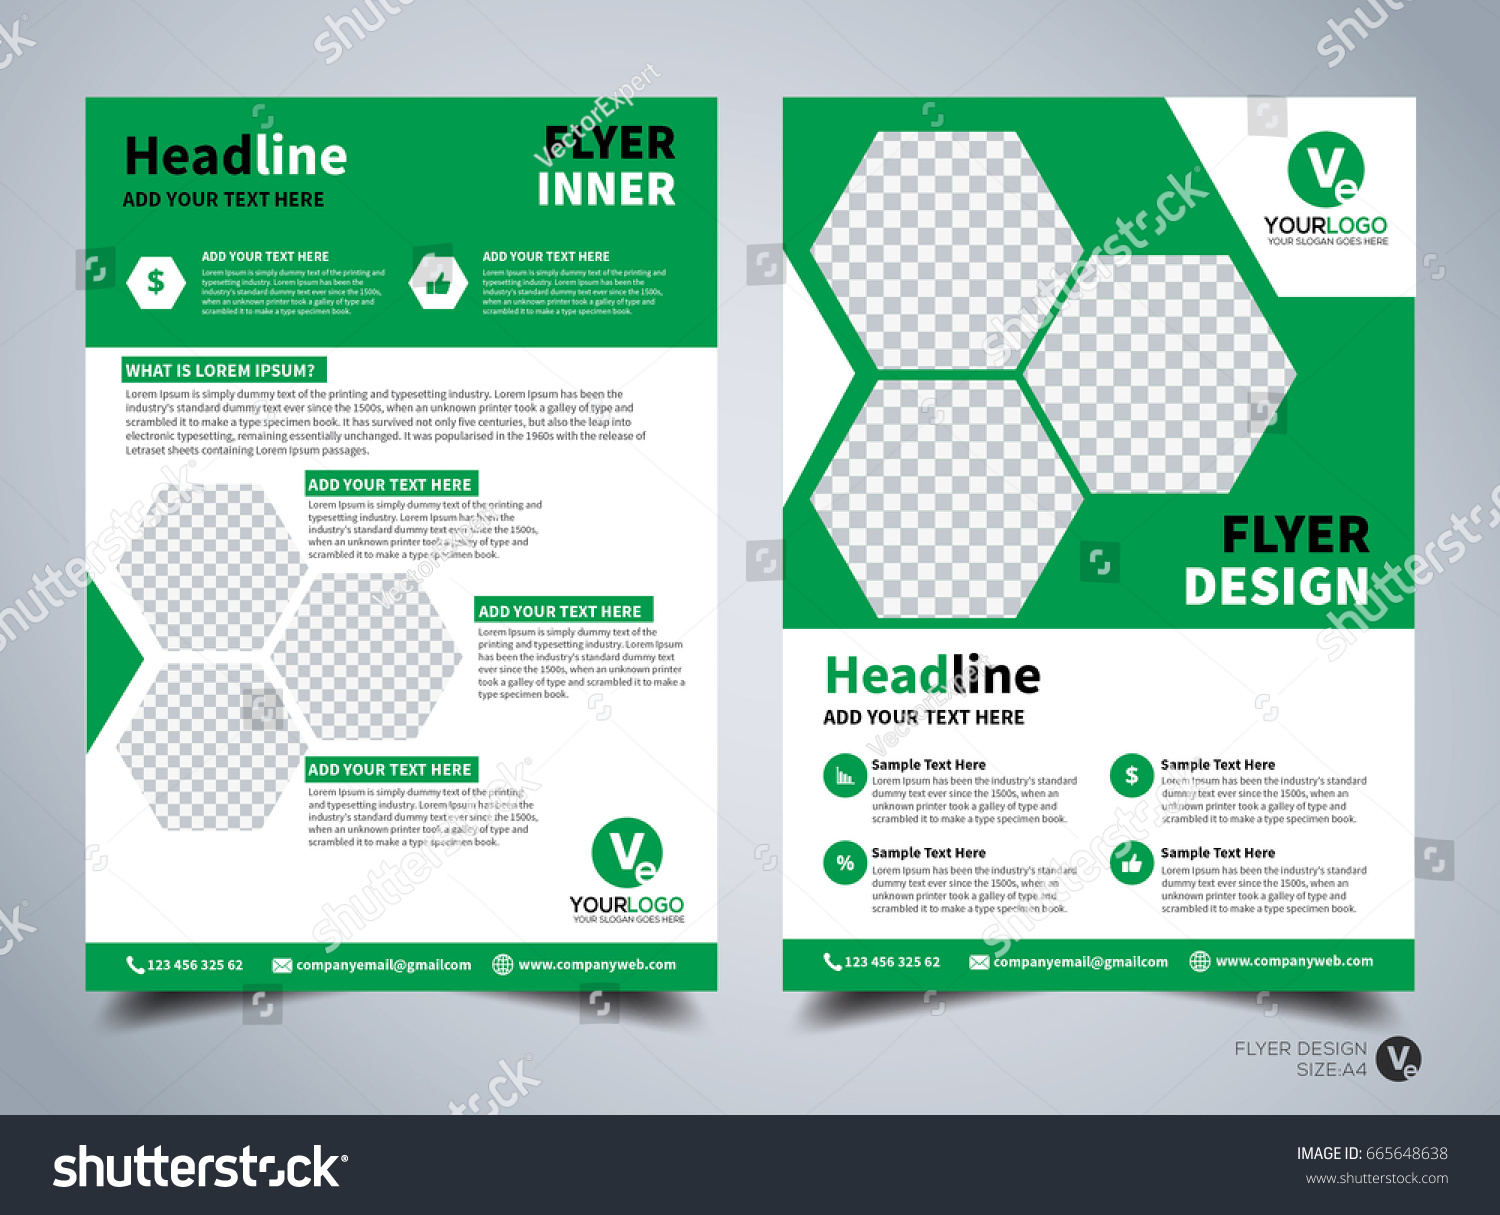 flyer design template vector leaflet design stock vector (royalty